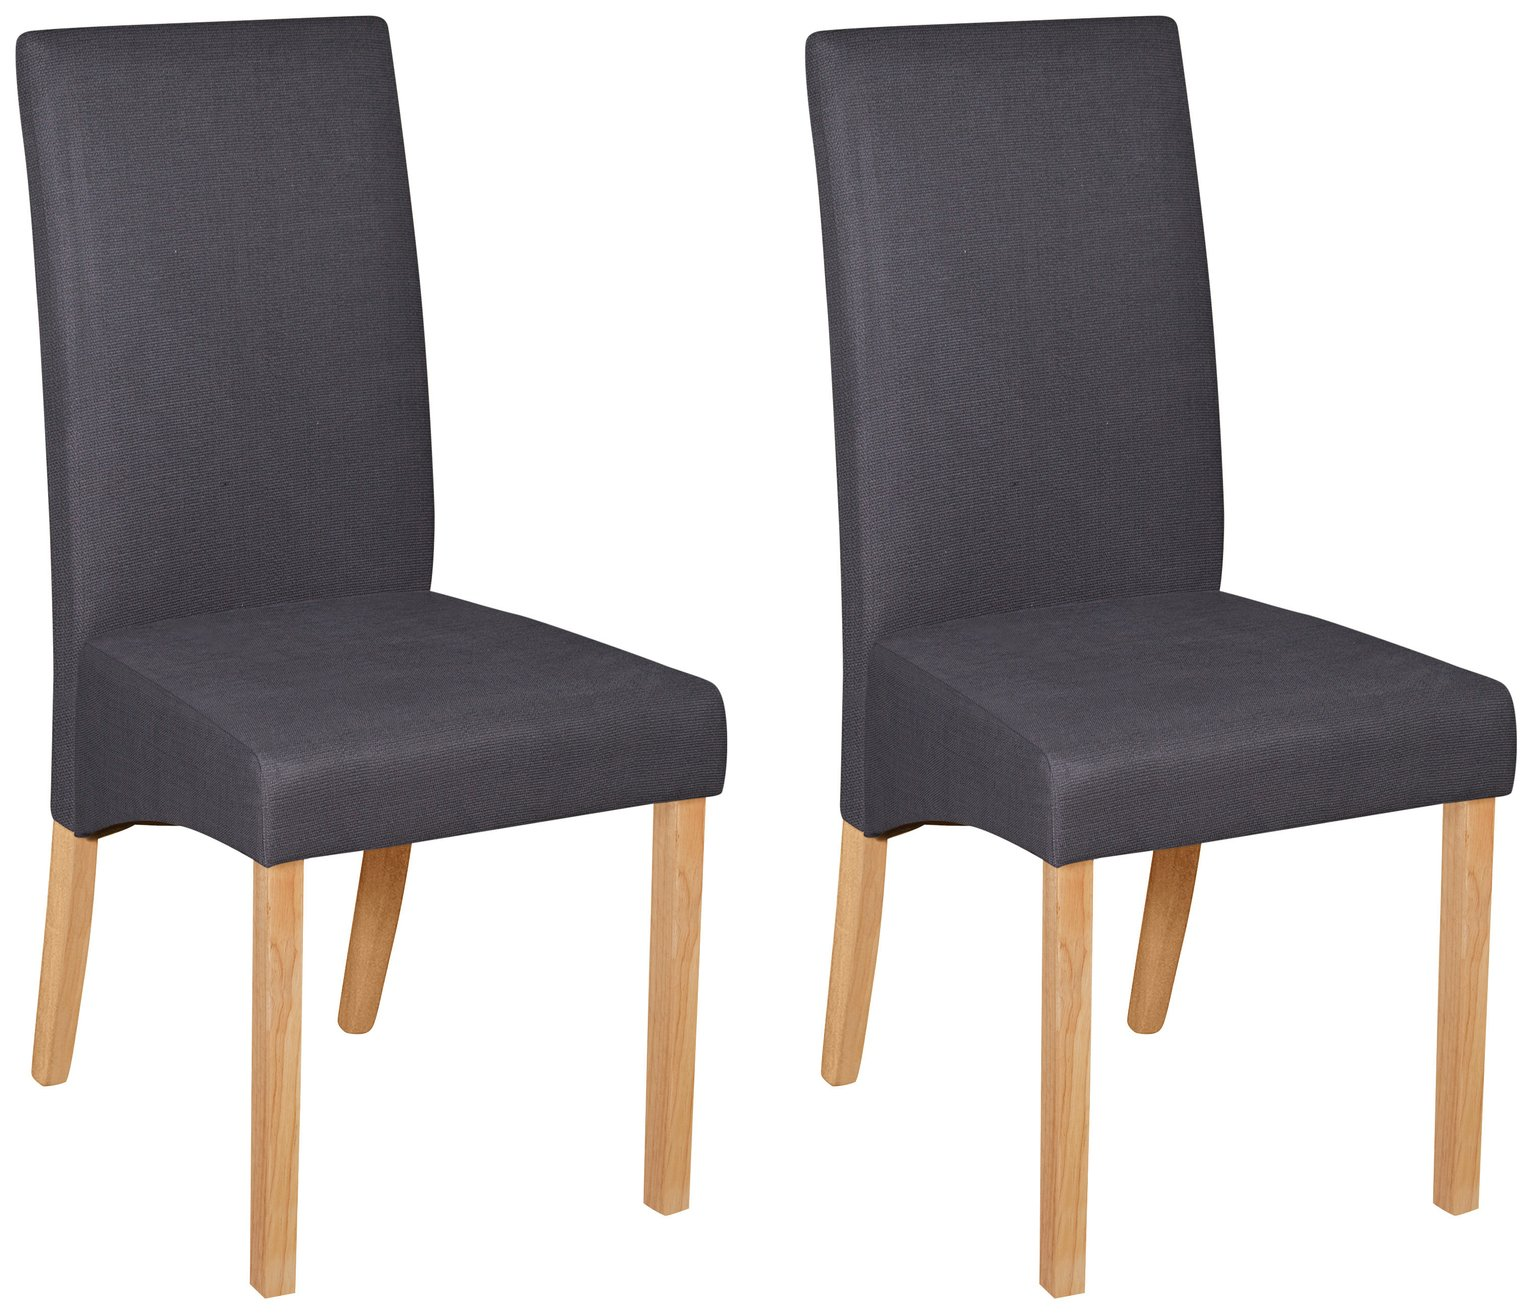 Image of Collection Pair of Charcoal Fabric Skirted Dining Chairs